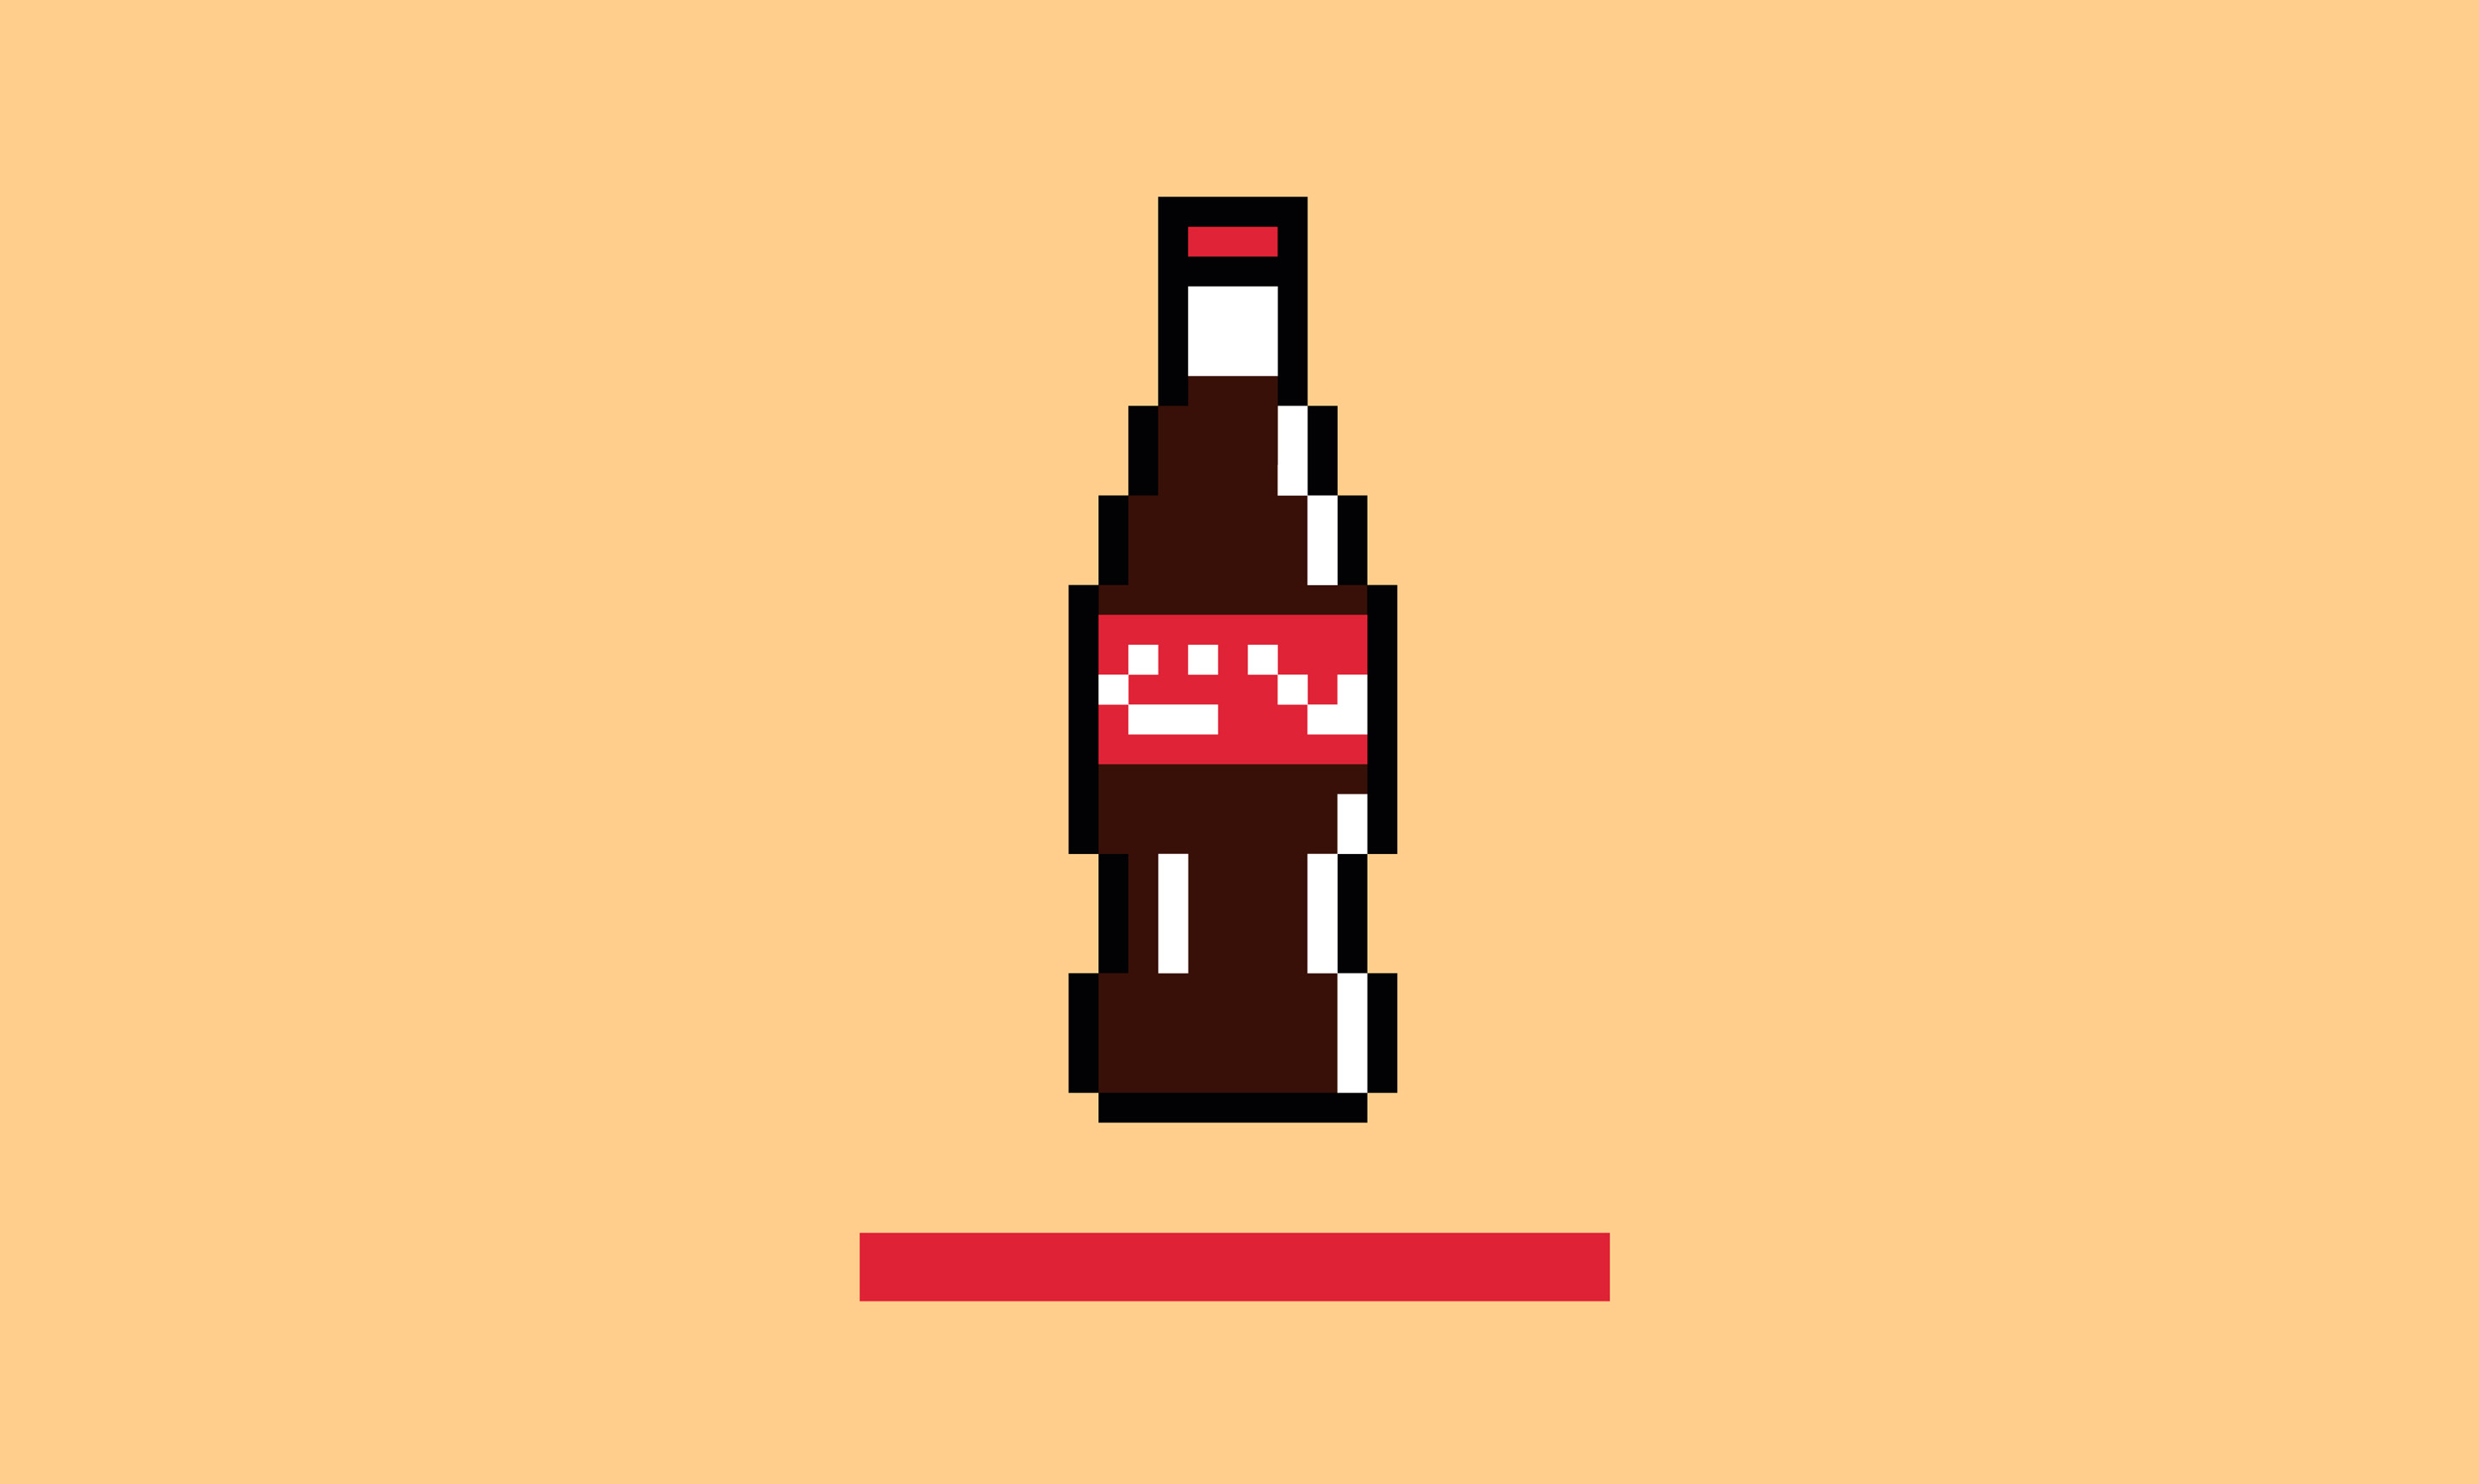 pixelated cola bottle